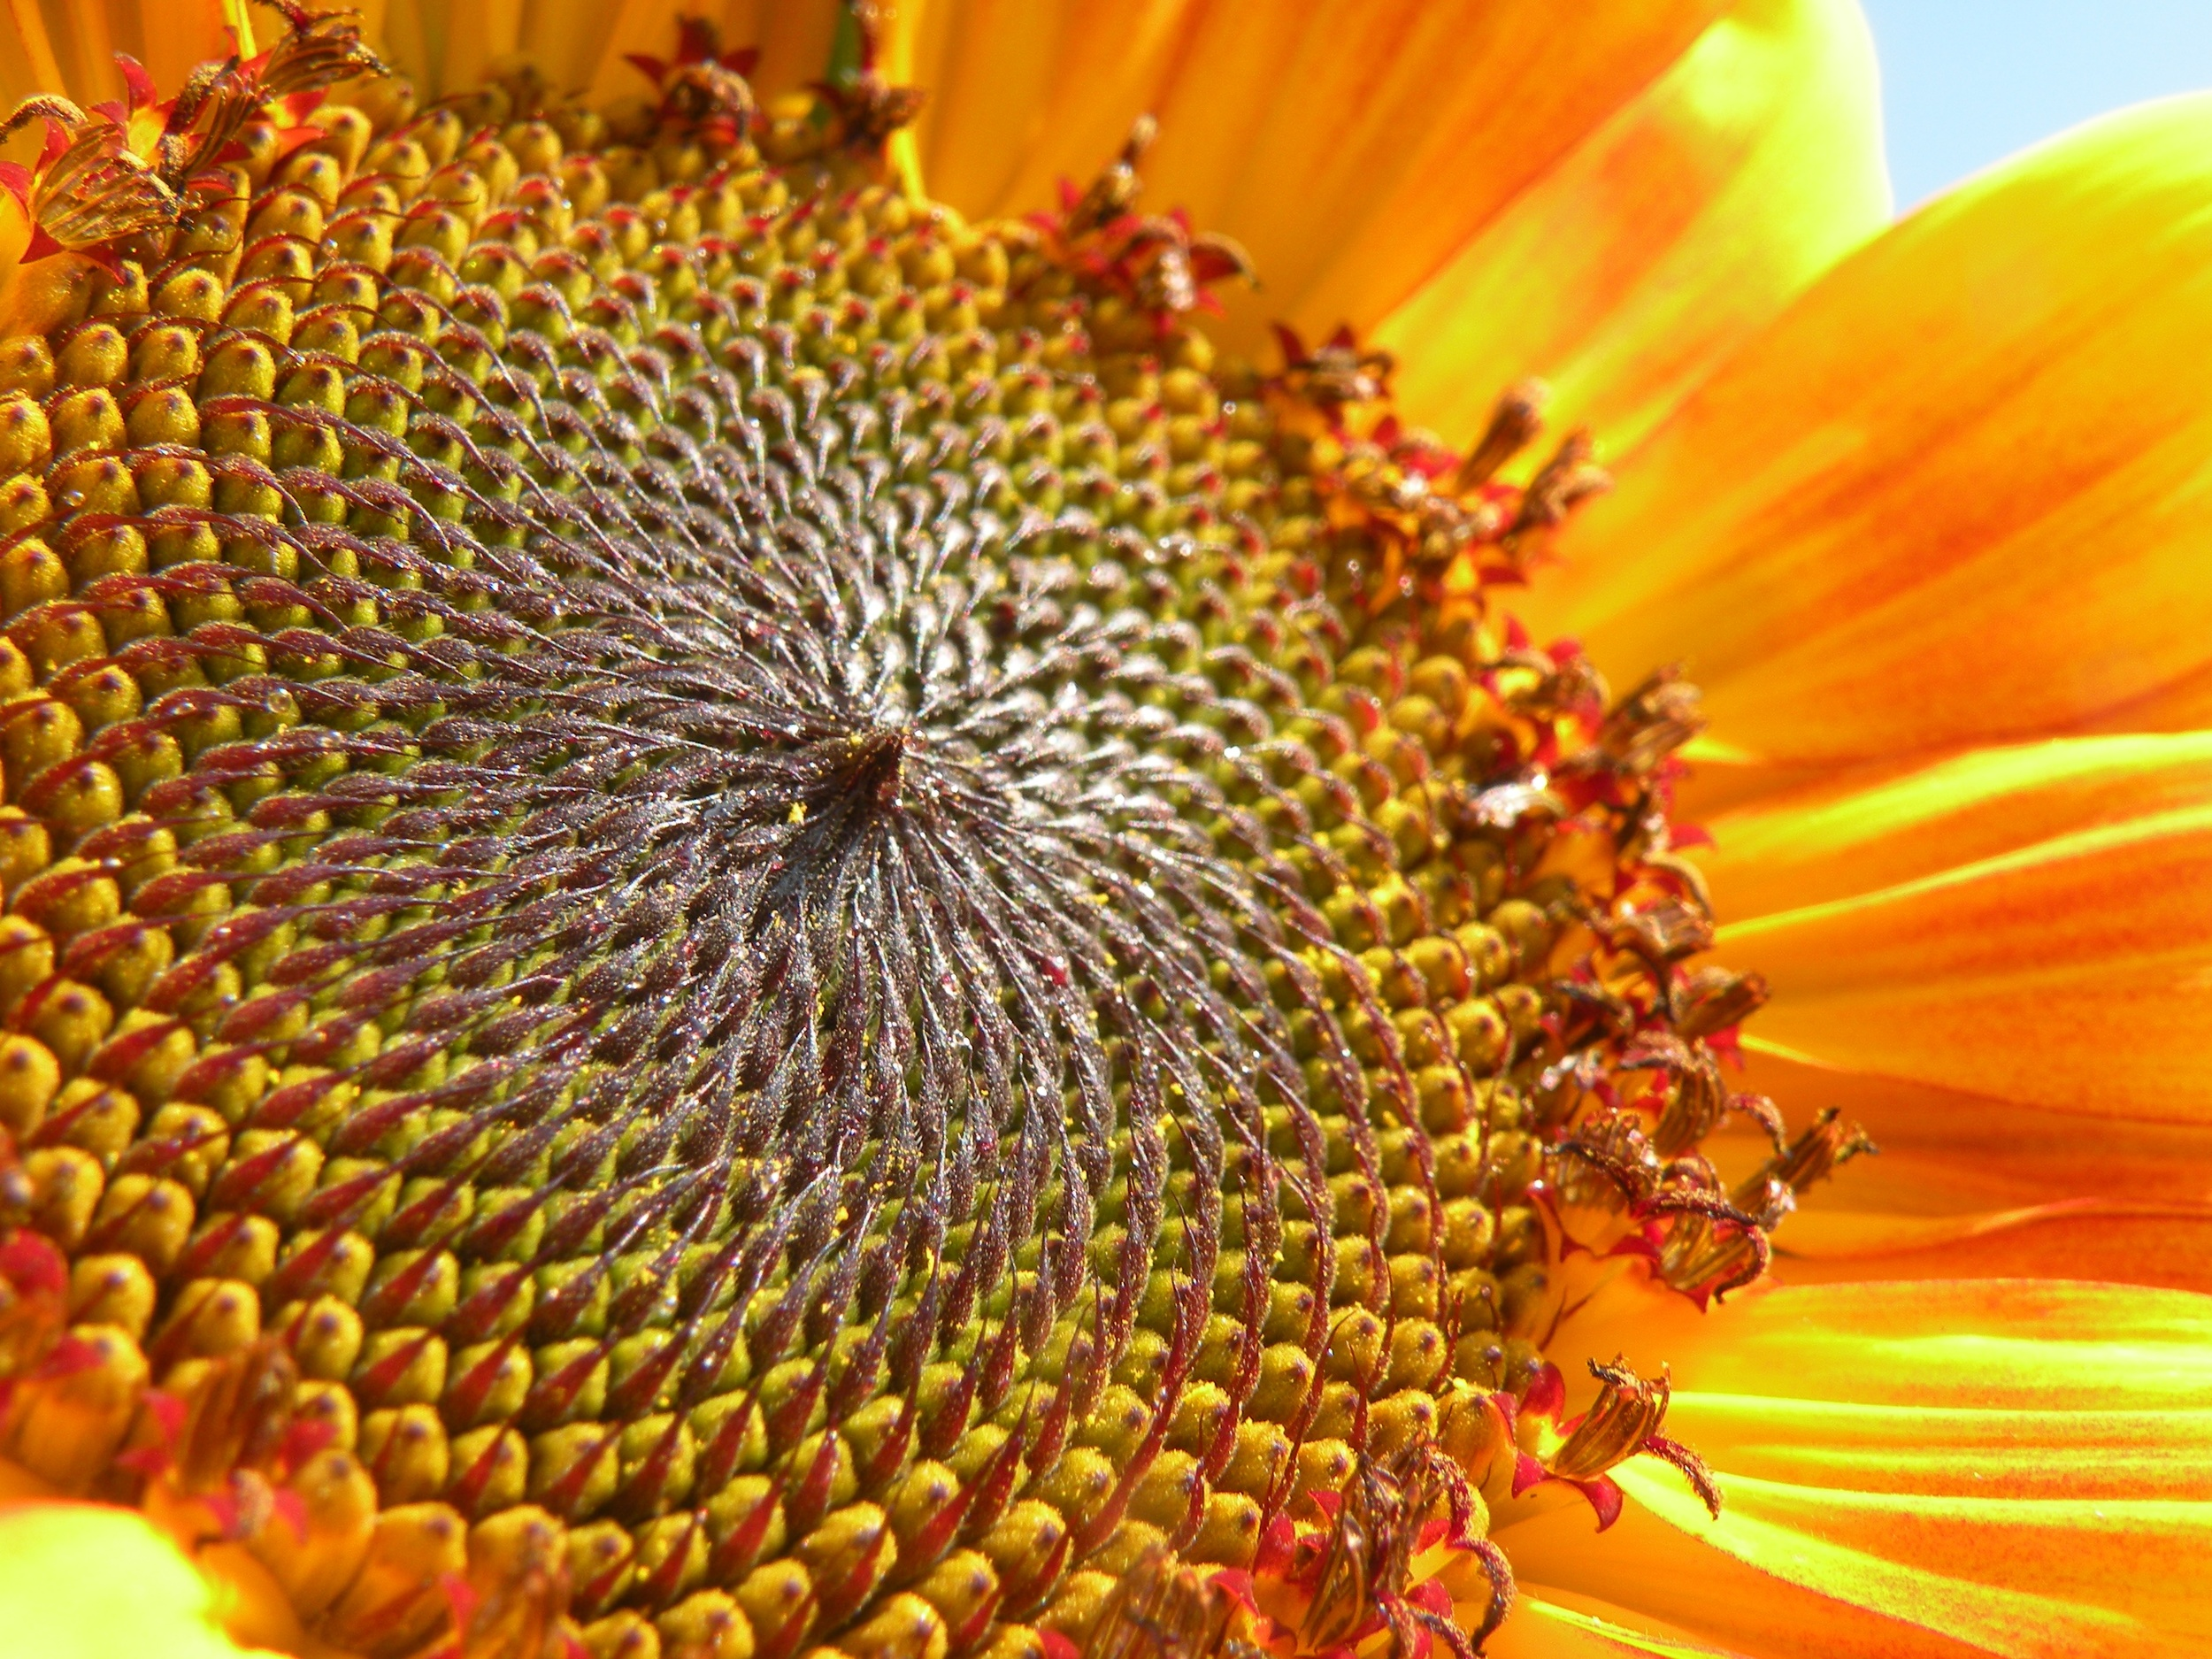 sunflower closeup.jpg